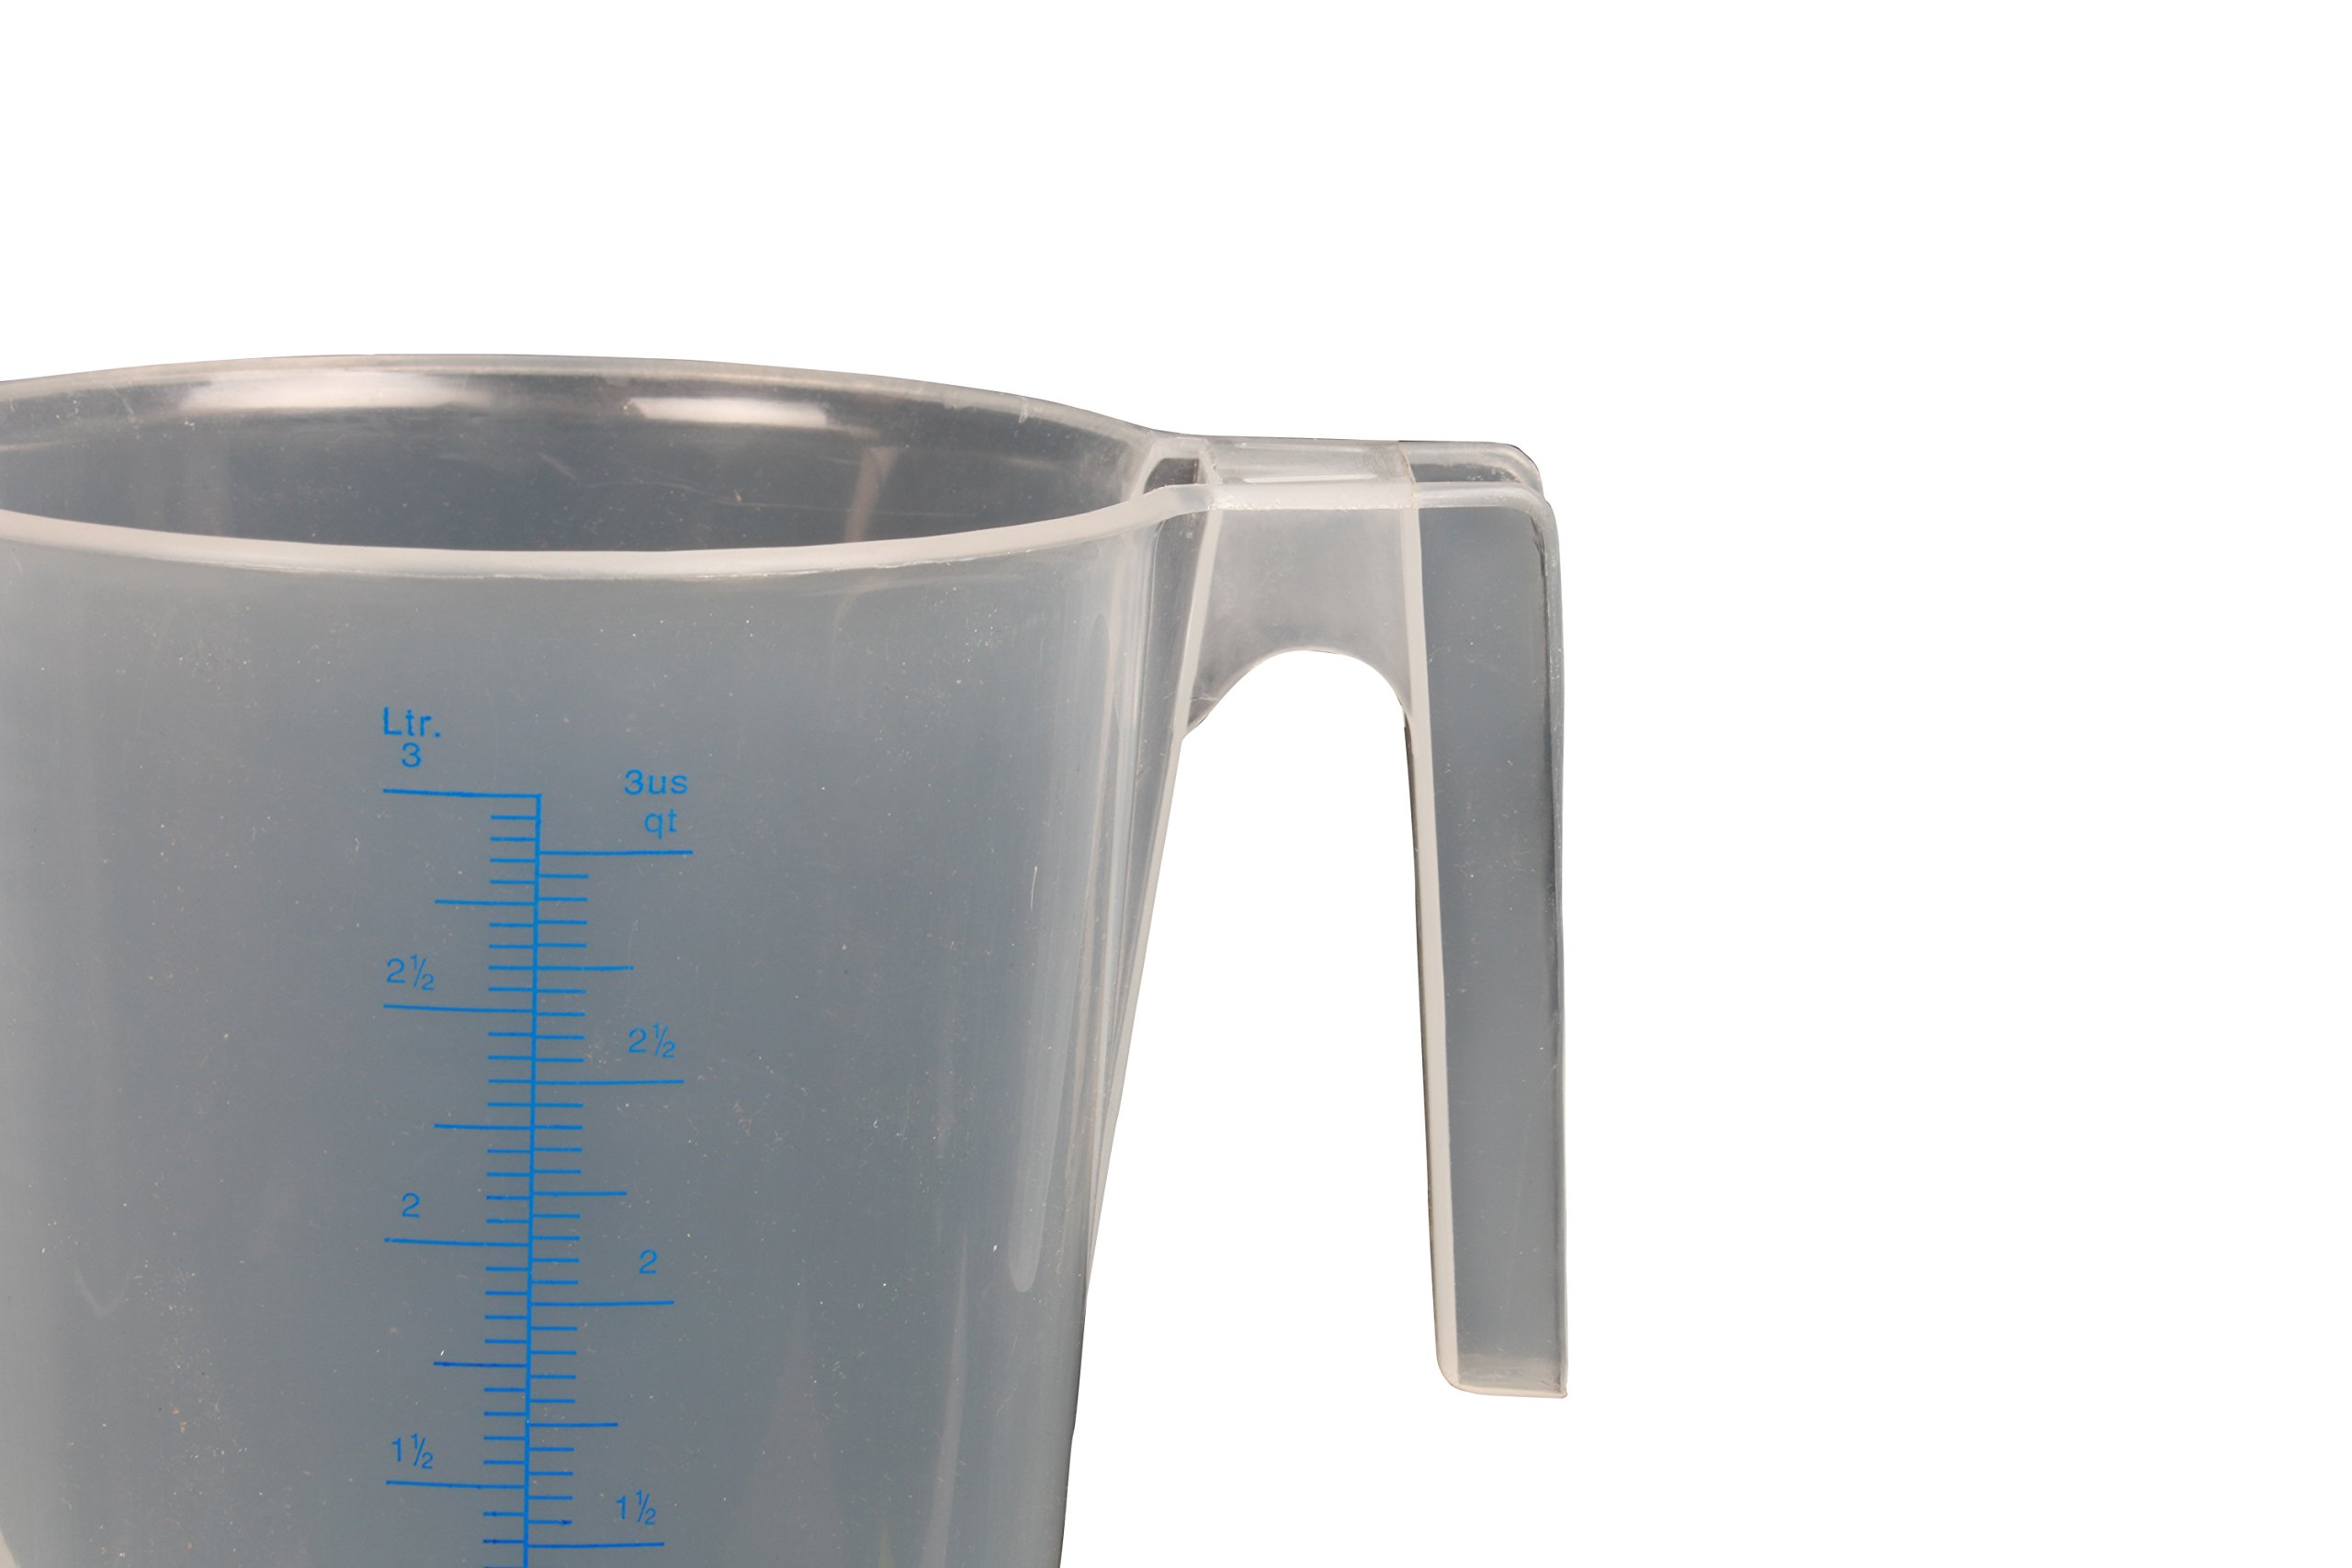 WirthCo 94150 Funnel King General Purpose Graduated Measuring Container - 3 Liter Capacity